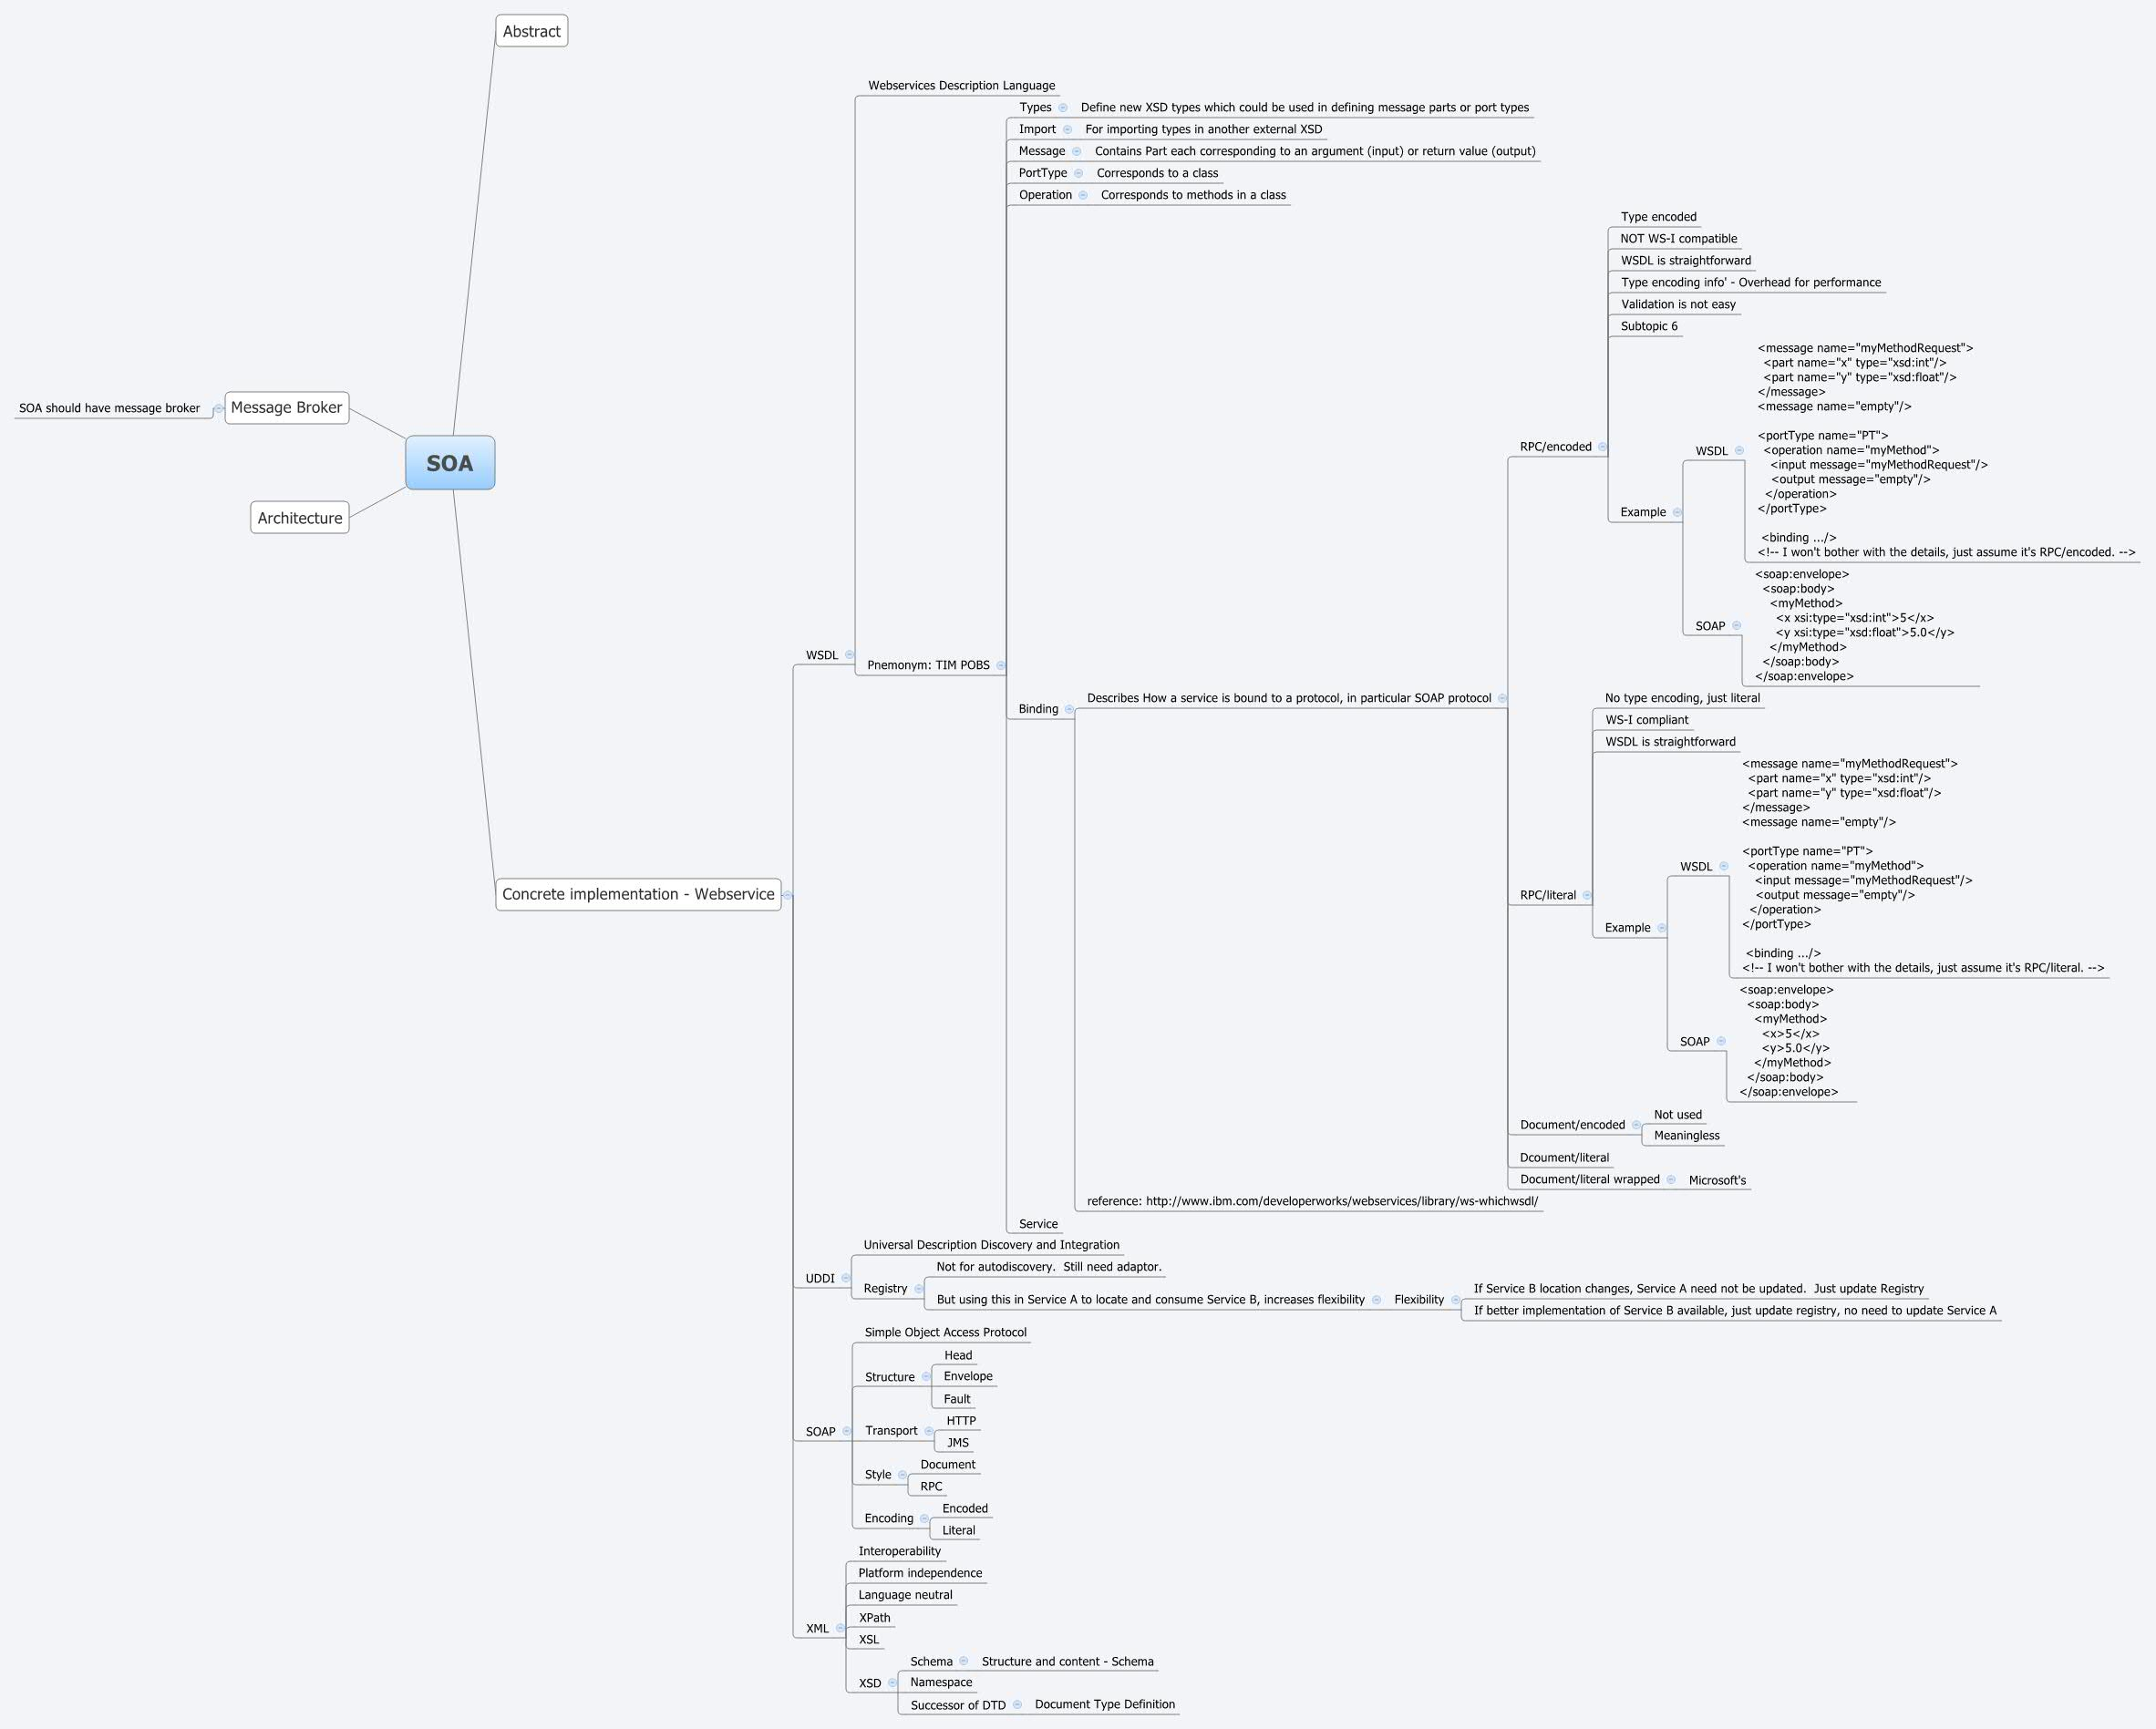 SOA - XMind - Mind Mapping Software